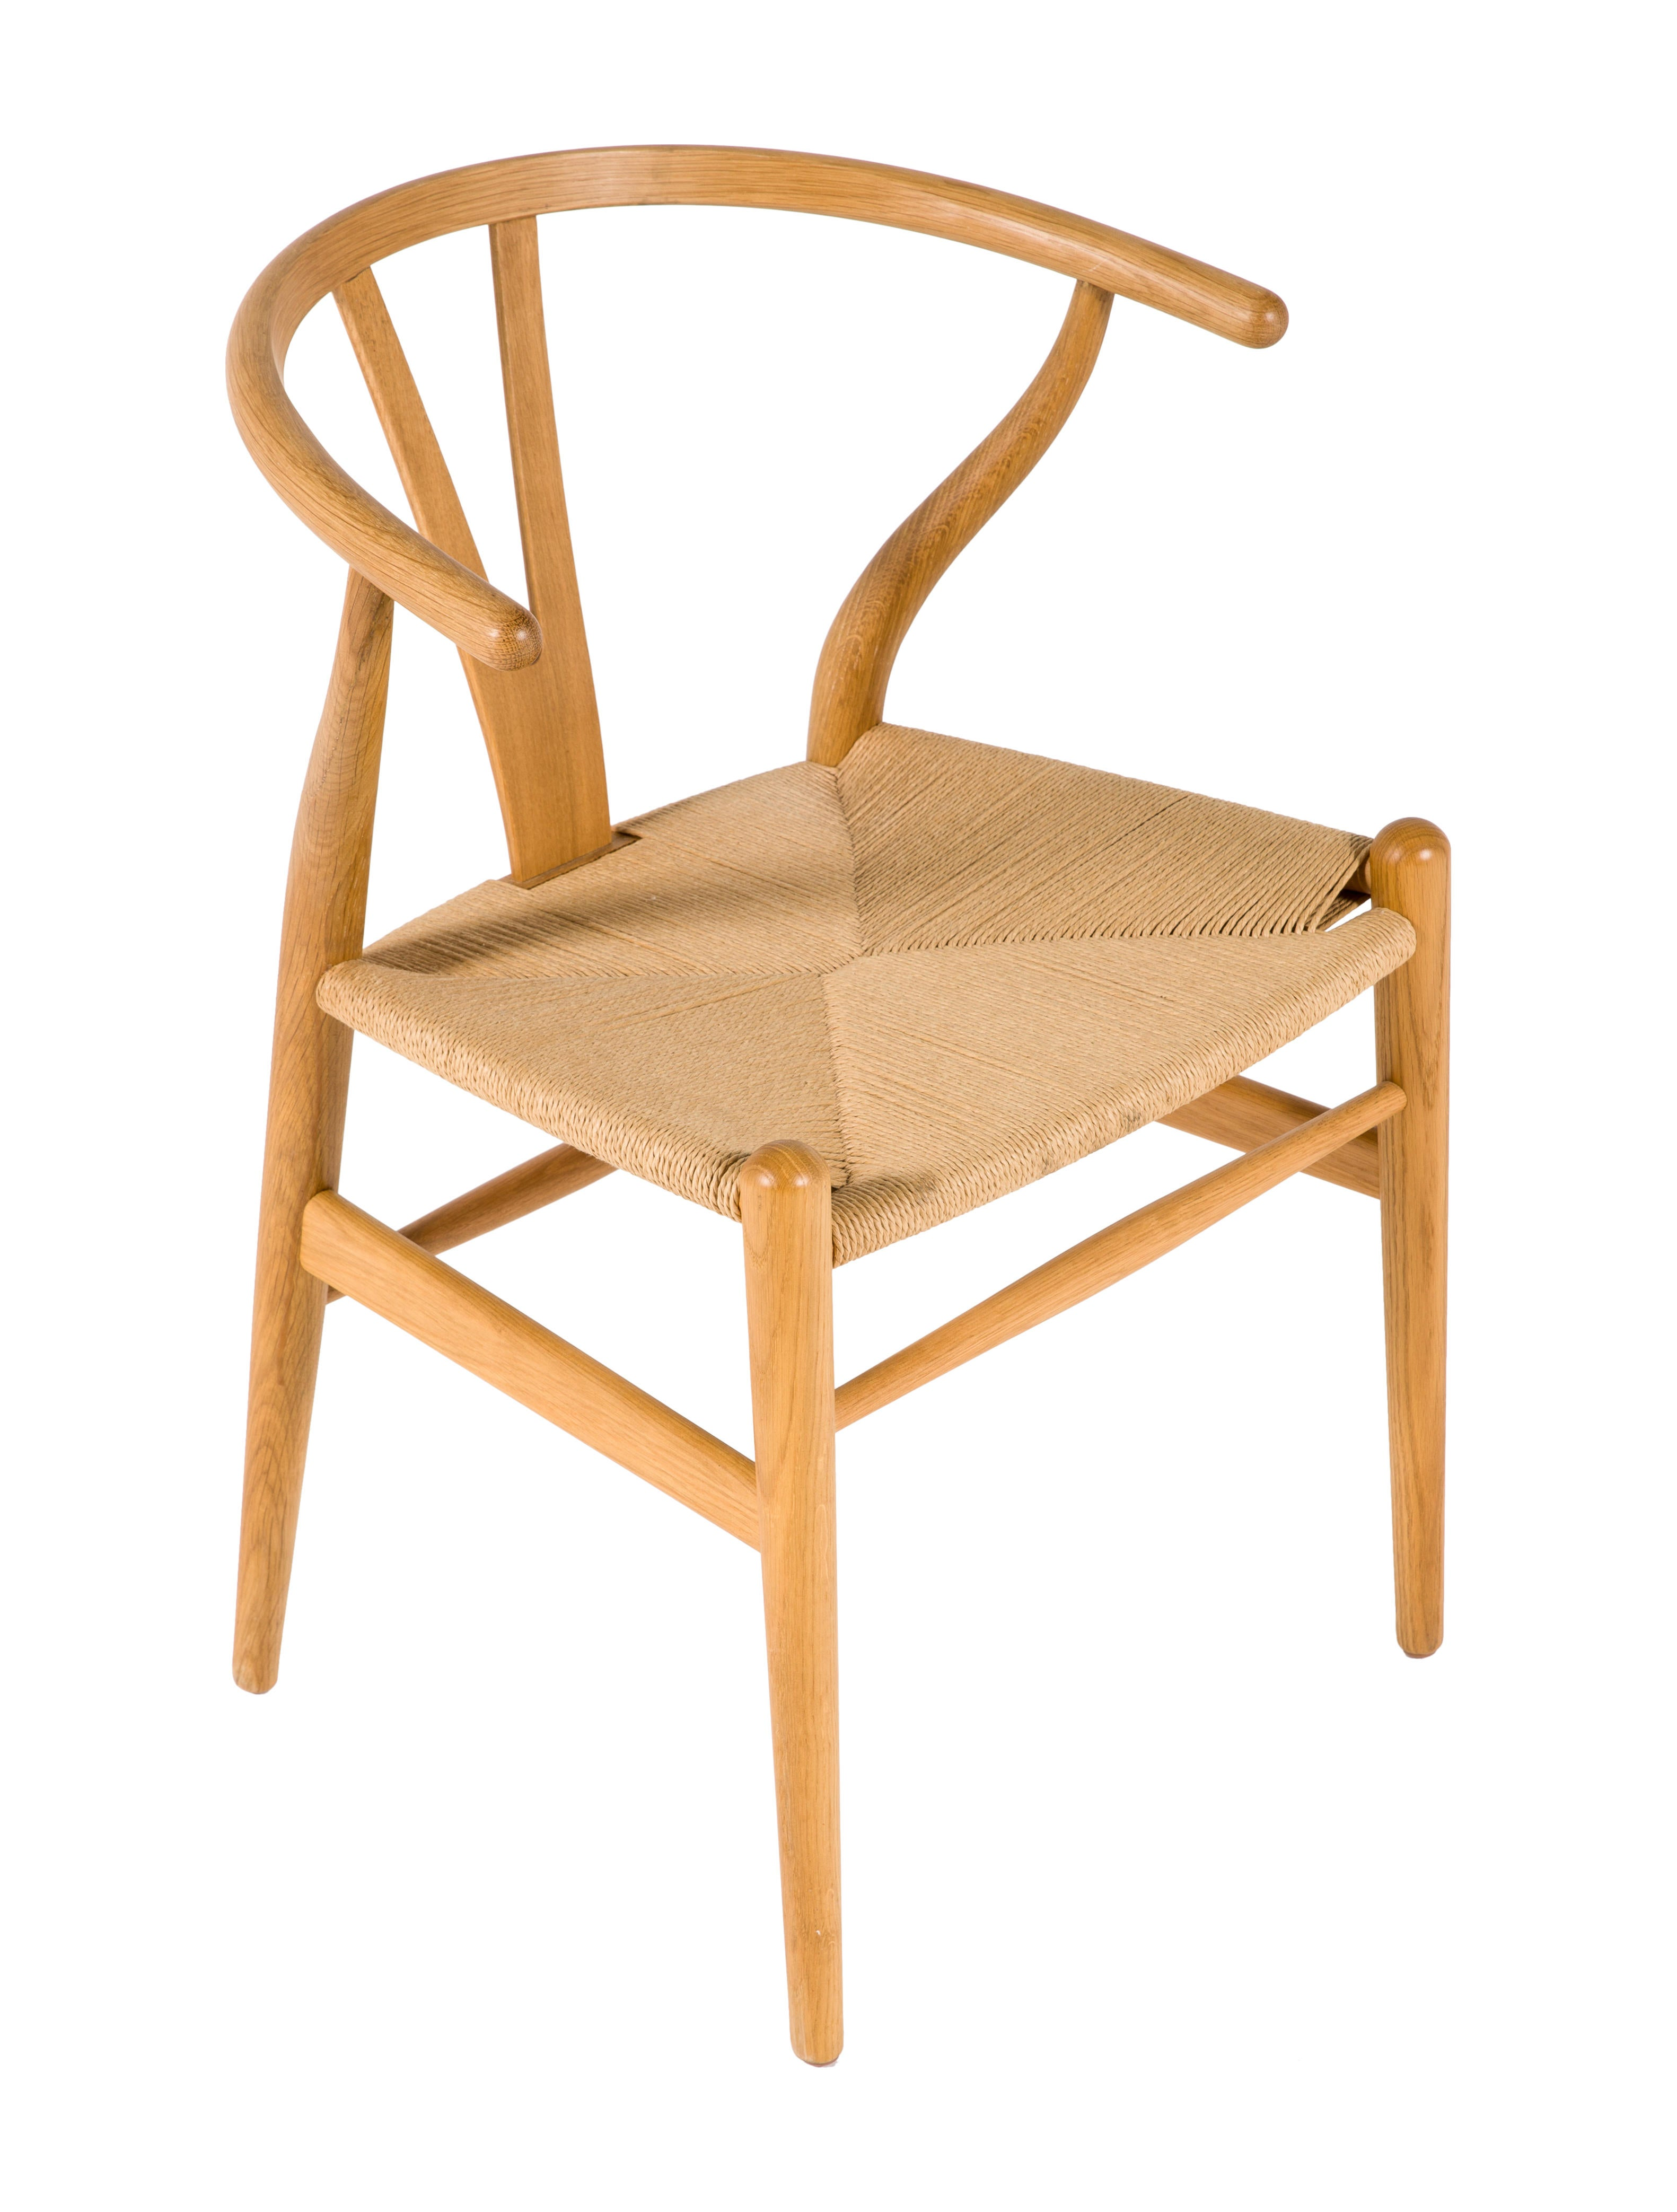 carl hansen son hans wegner wishbone chair furniture cahas20006 the realreal. Black Bedroom Furniture Sets. Home Design Ideas